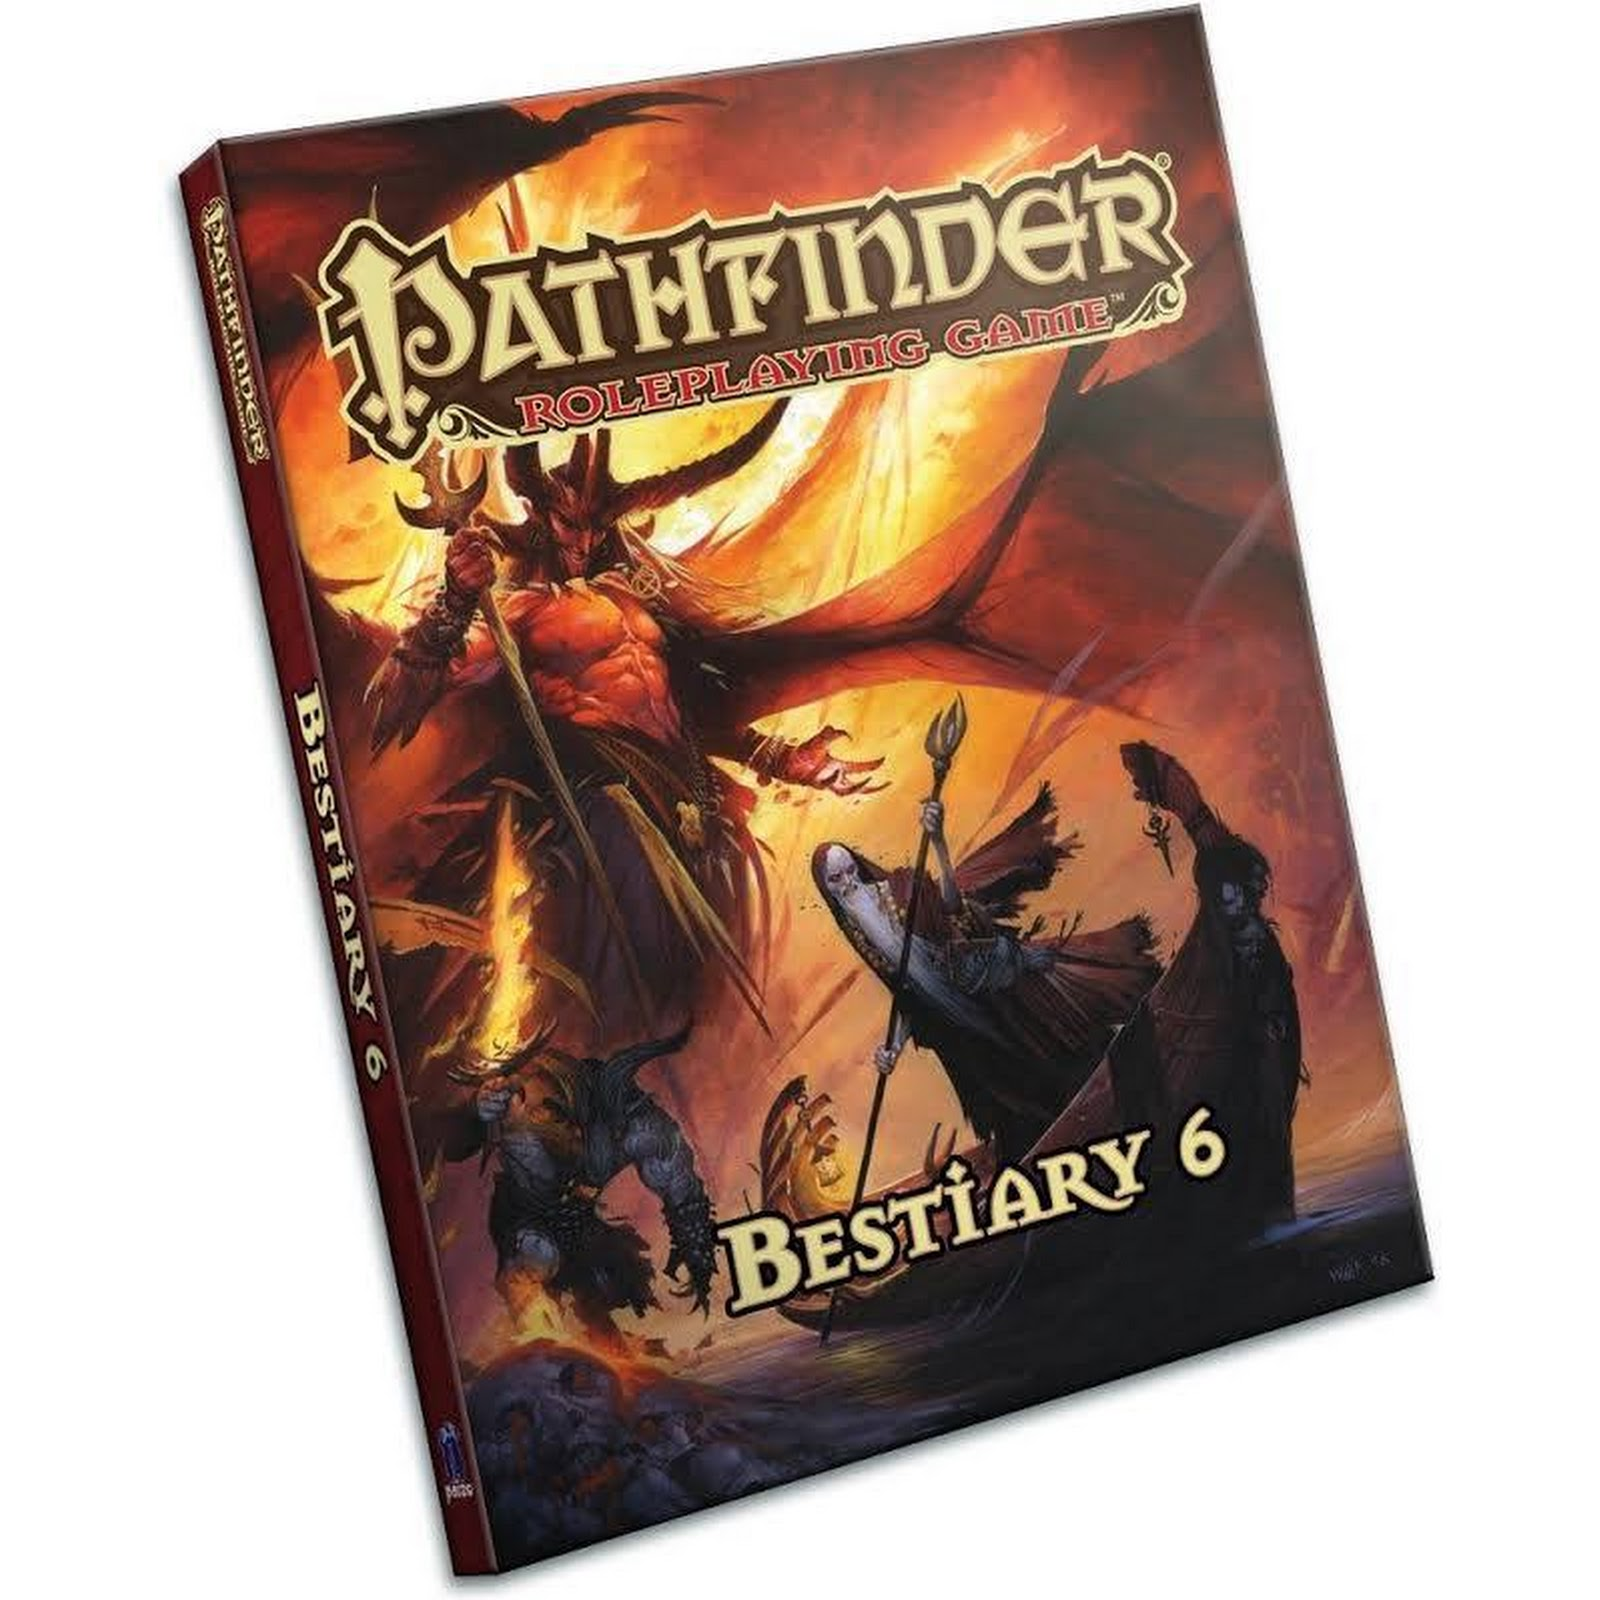 Pathfinder Bestiary 6 cover